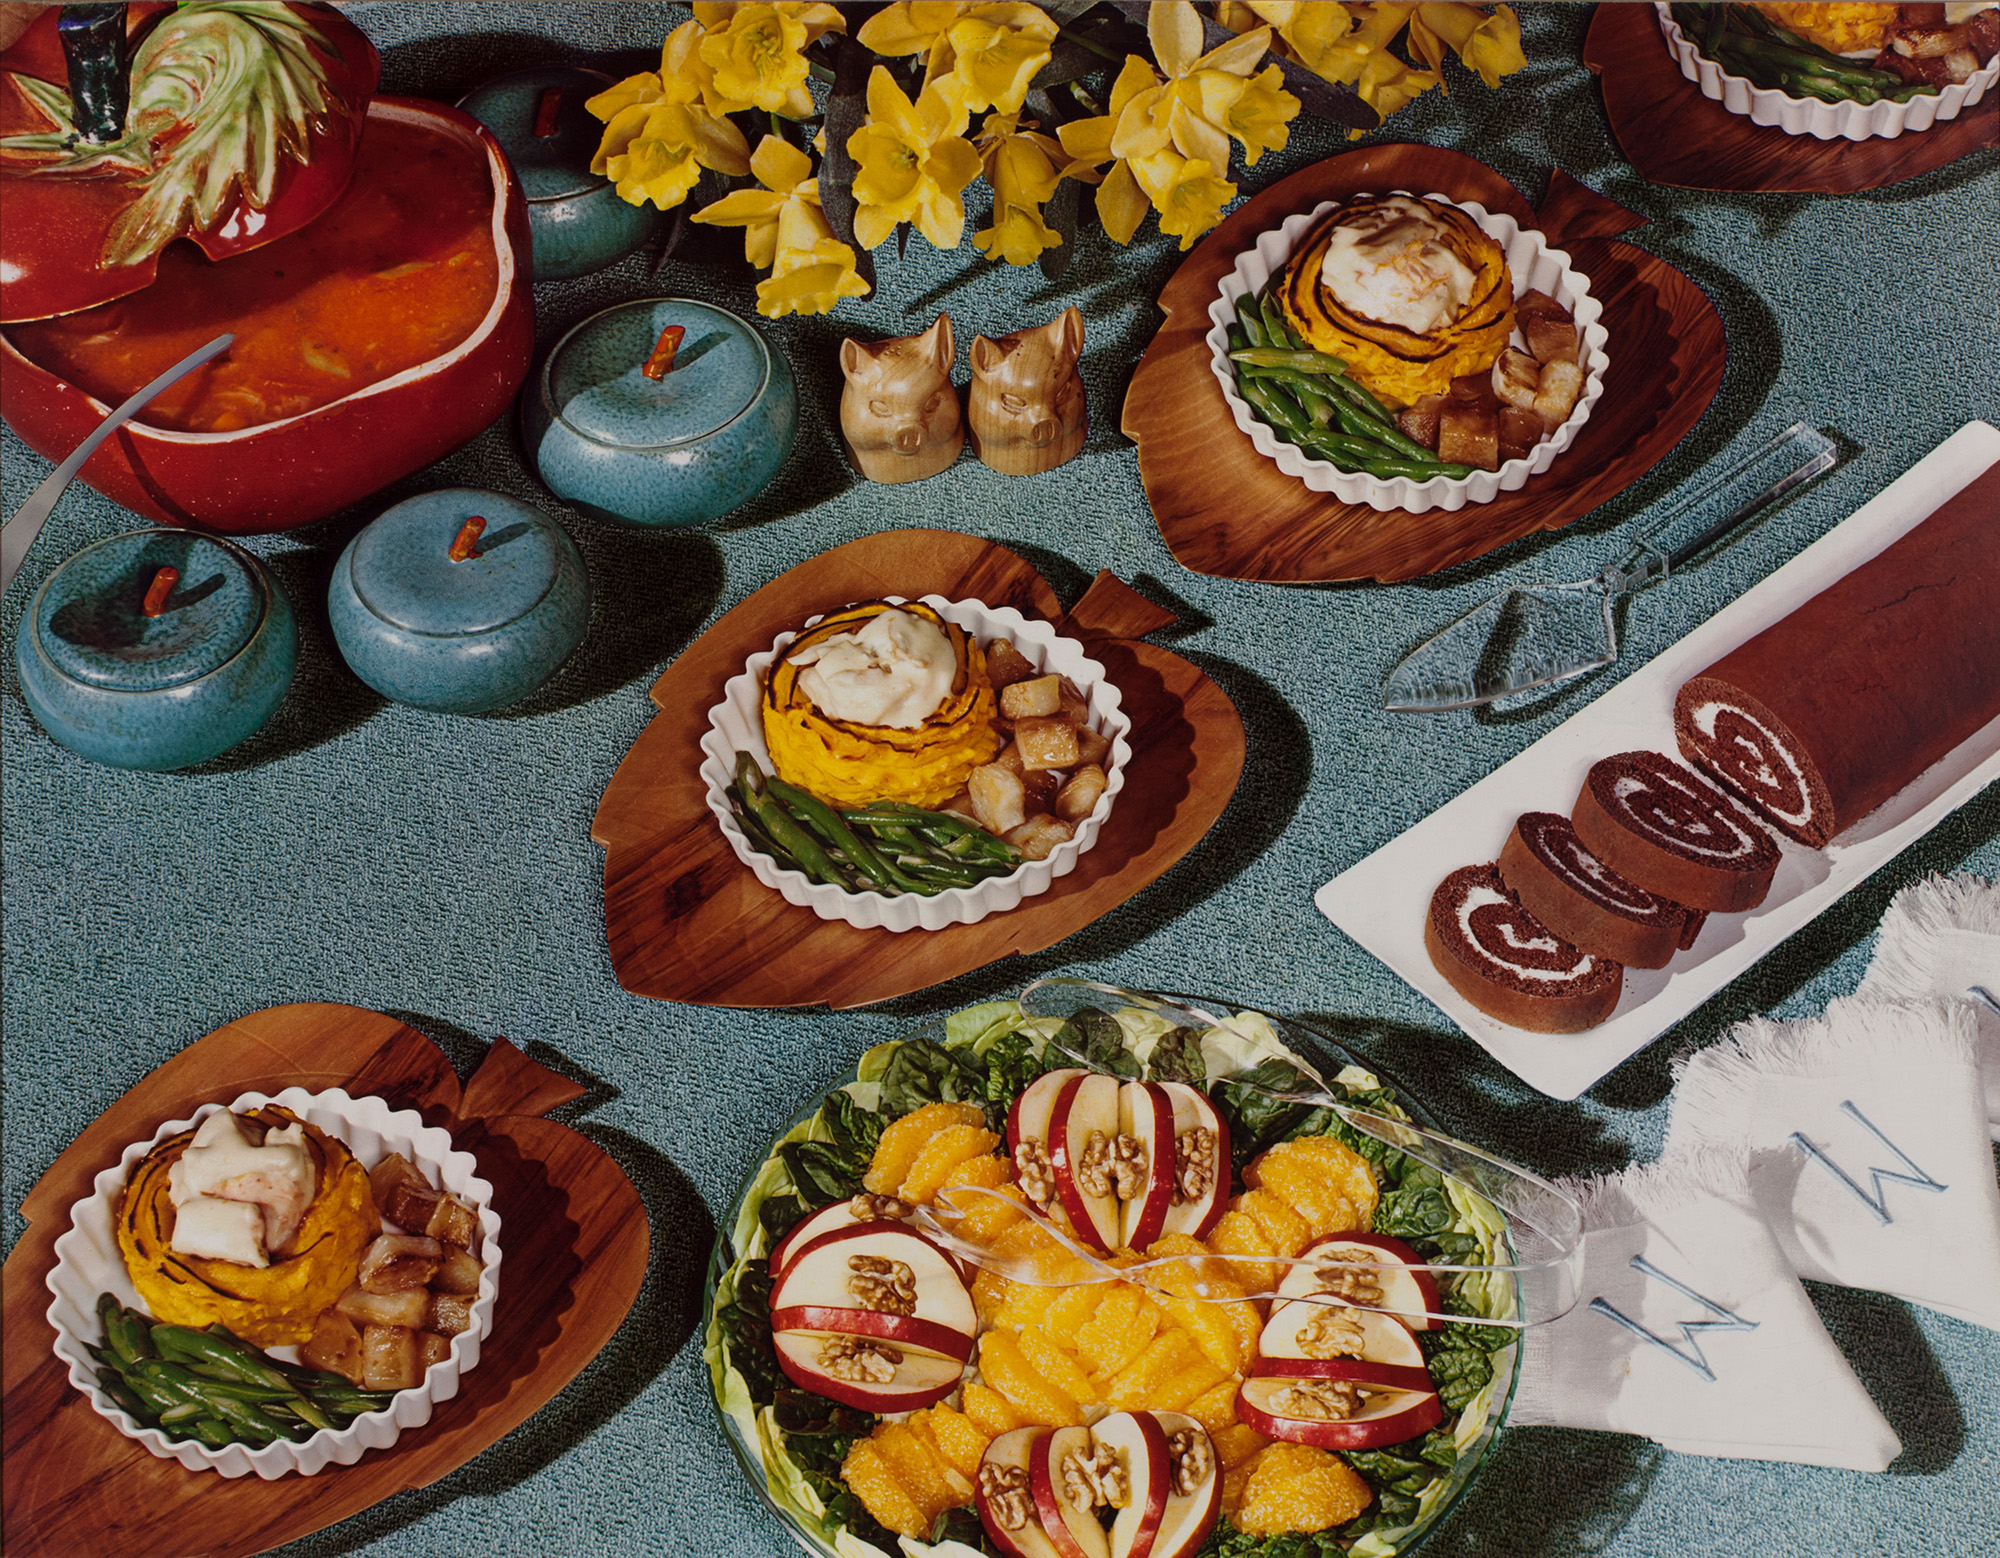 Nickolas Muray, Food Spread, Daffodils, McCall's magazine, ca. 1946; from Feast for the Eyes (Aperture, 2017) © Nickolas Muray Photo Archives, Courtesy George Eastman Museum, gift of Mrs. Nickolas Muray